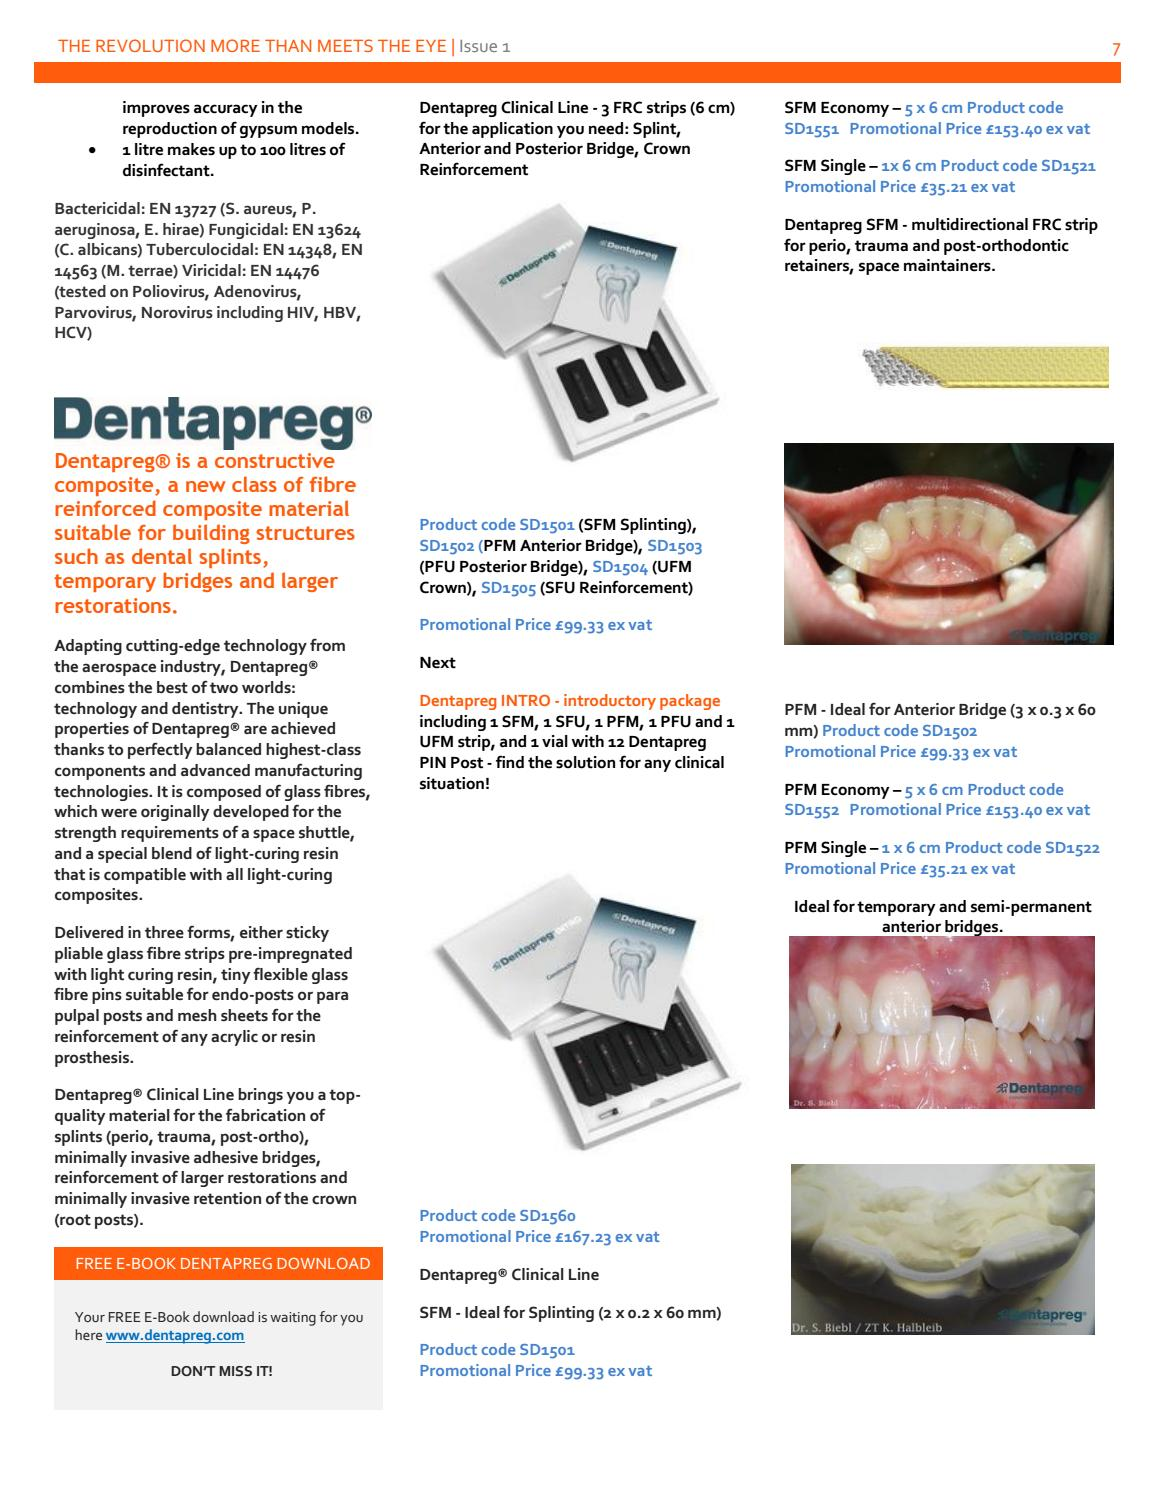 Bracon Clinical Supplement May June 2018 By Bracon Issuu